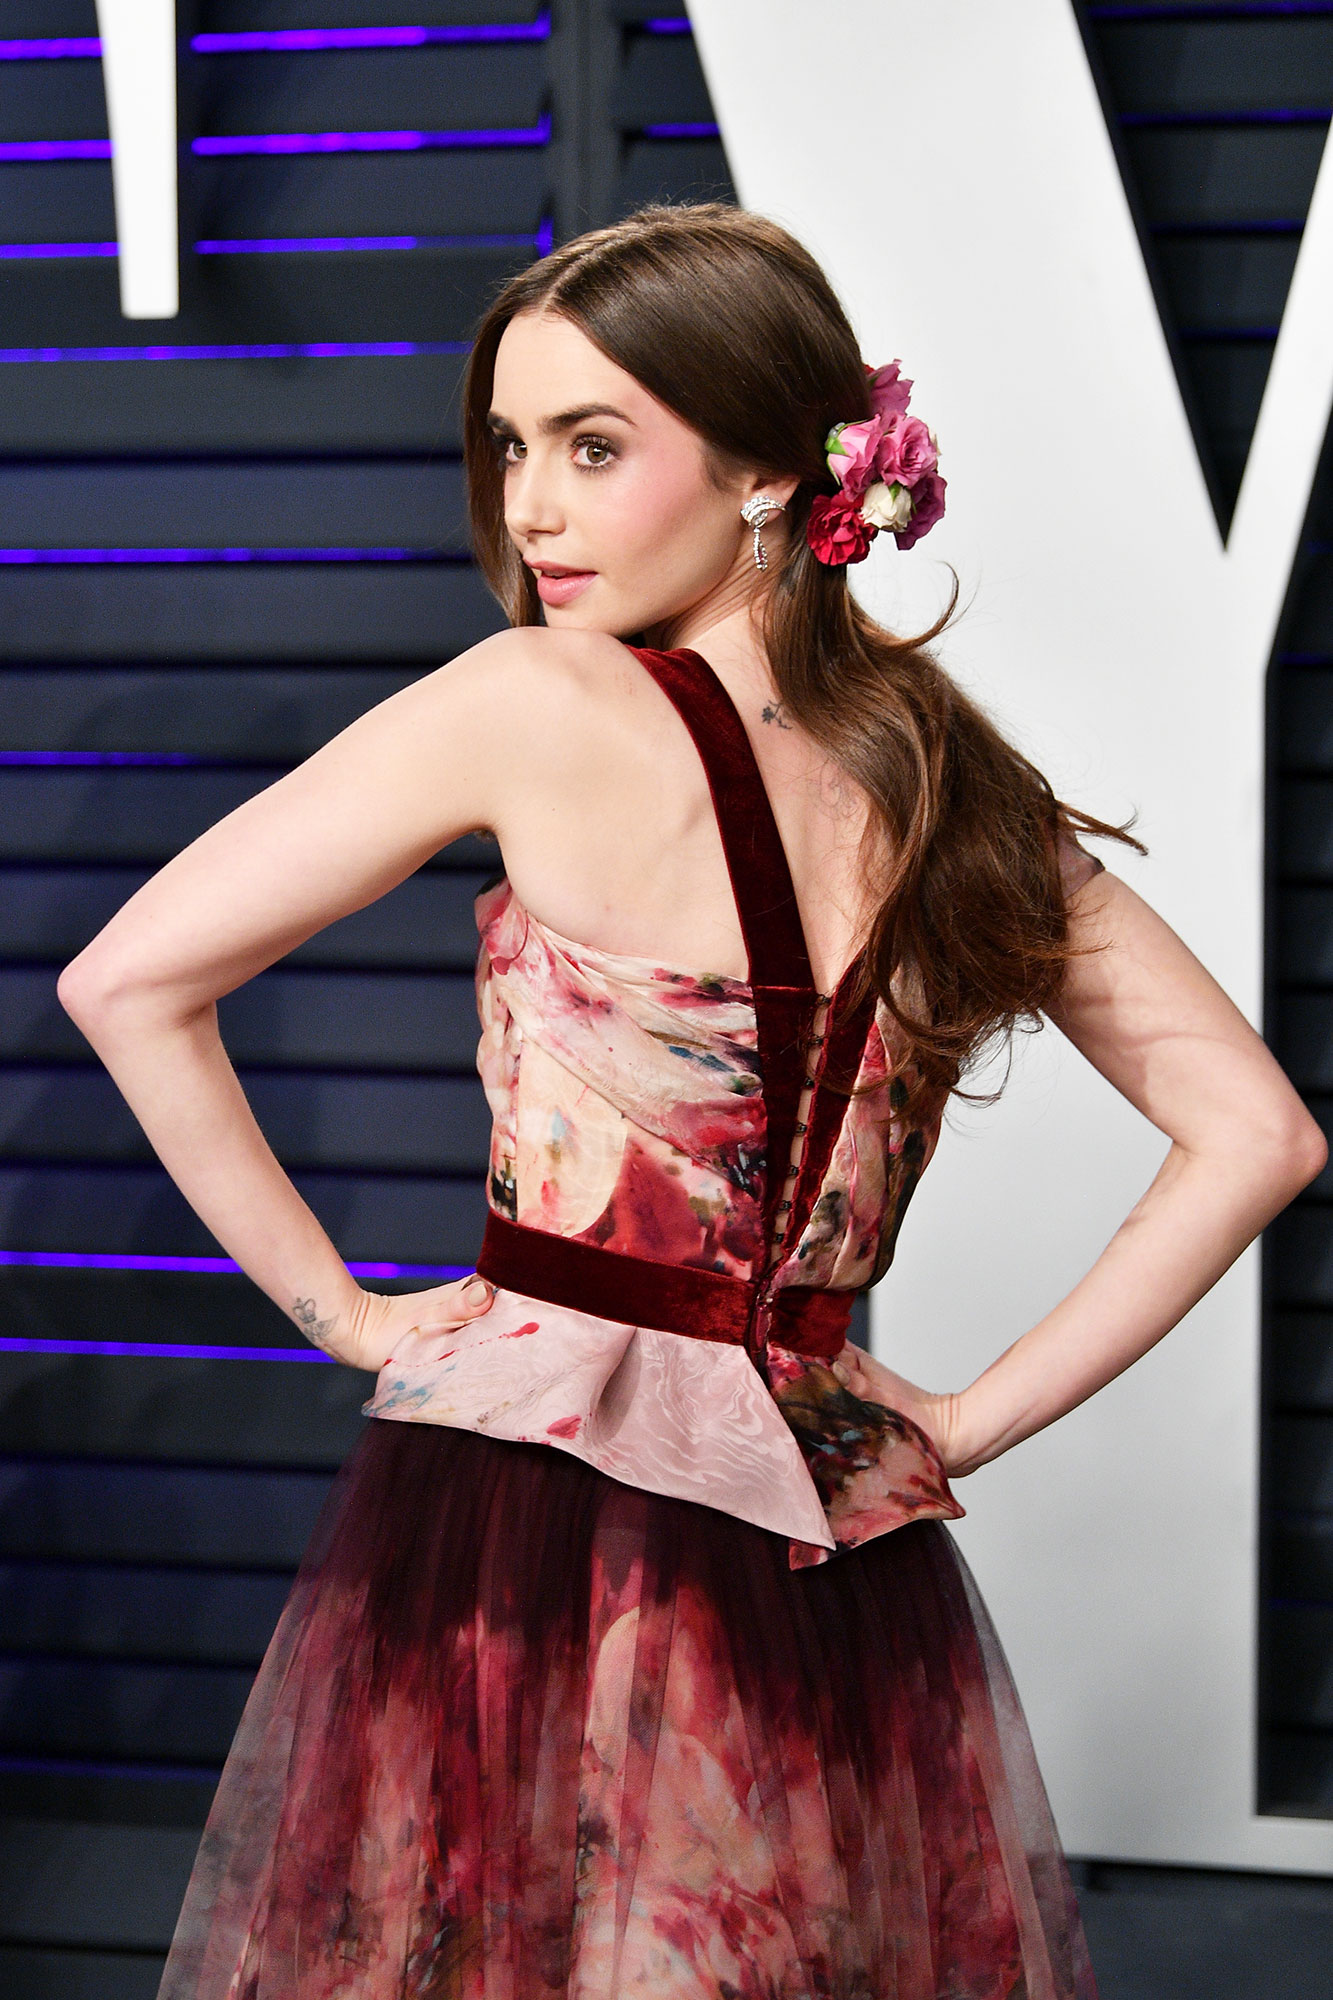 """Lily Collins Celebs Are Here With All the Coachella Beauty Inspo You Need - Celeb hair stylist Mara Roszak shared that she cut fresh rose stems down to the bud and glued them onto a plain bridal veil comb to create the brunette beaty's dreamy hair accessory at the 2019 Vanity Fair Oscar Party. """"You can play around with shapes or use a headband,"""" she shares ."""